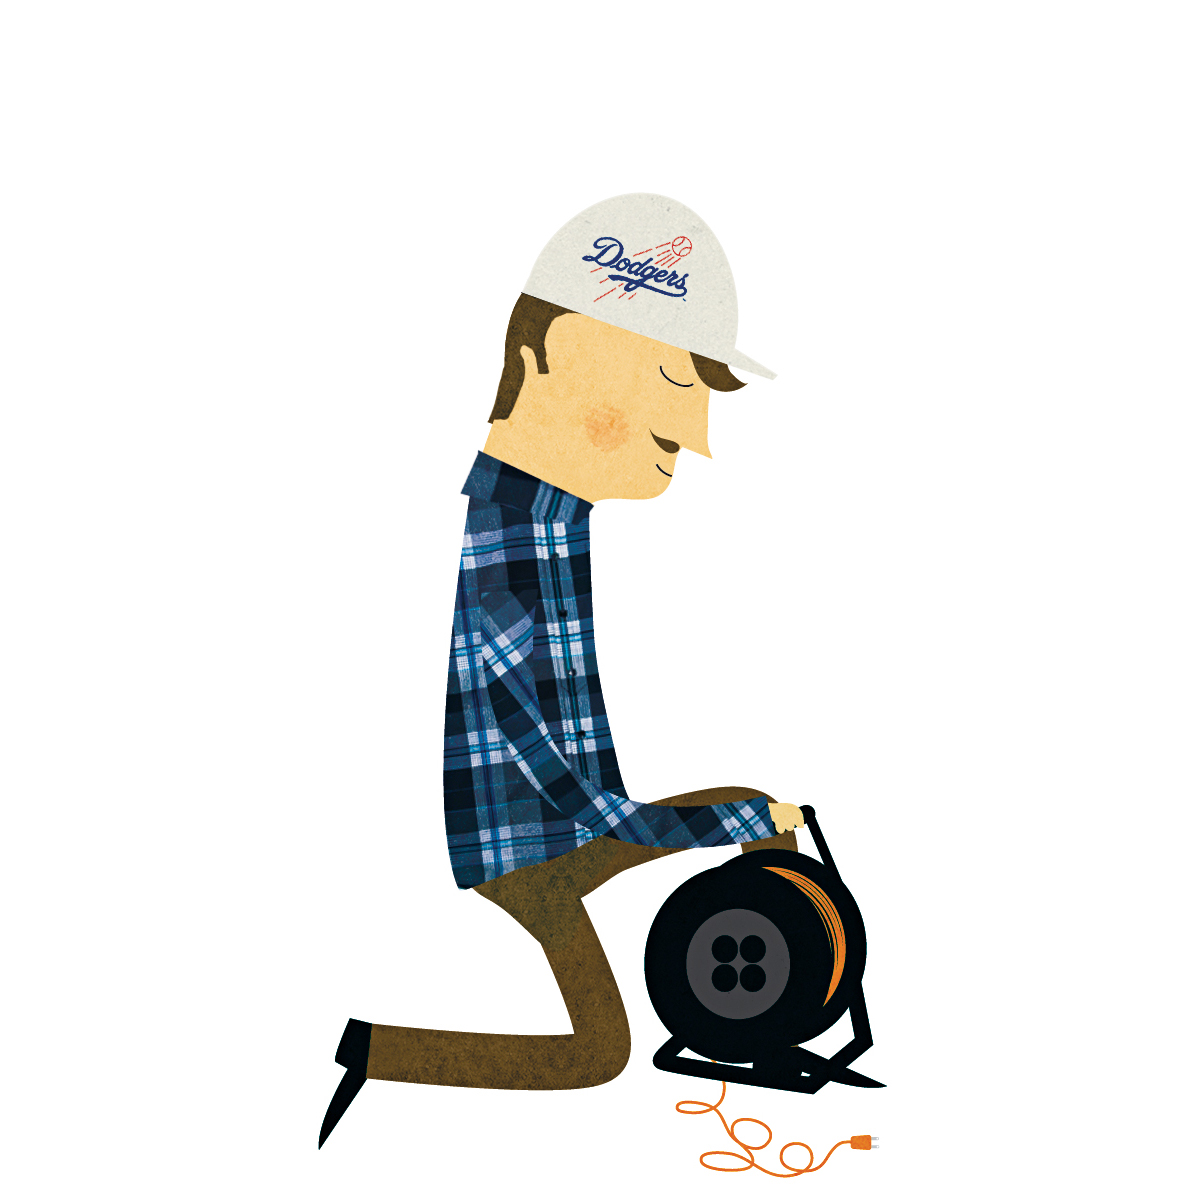 101 contractors illustration  hard hat